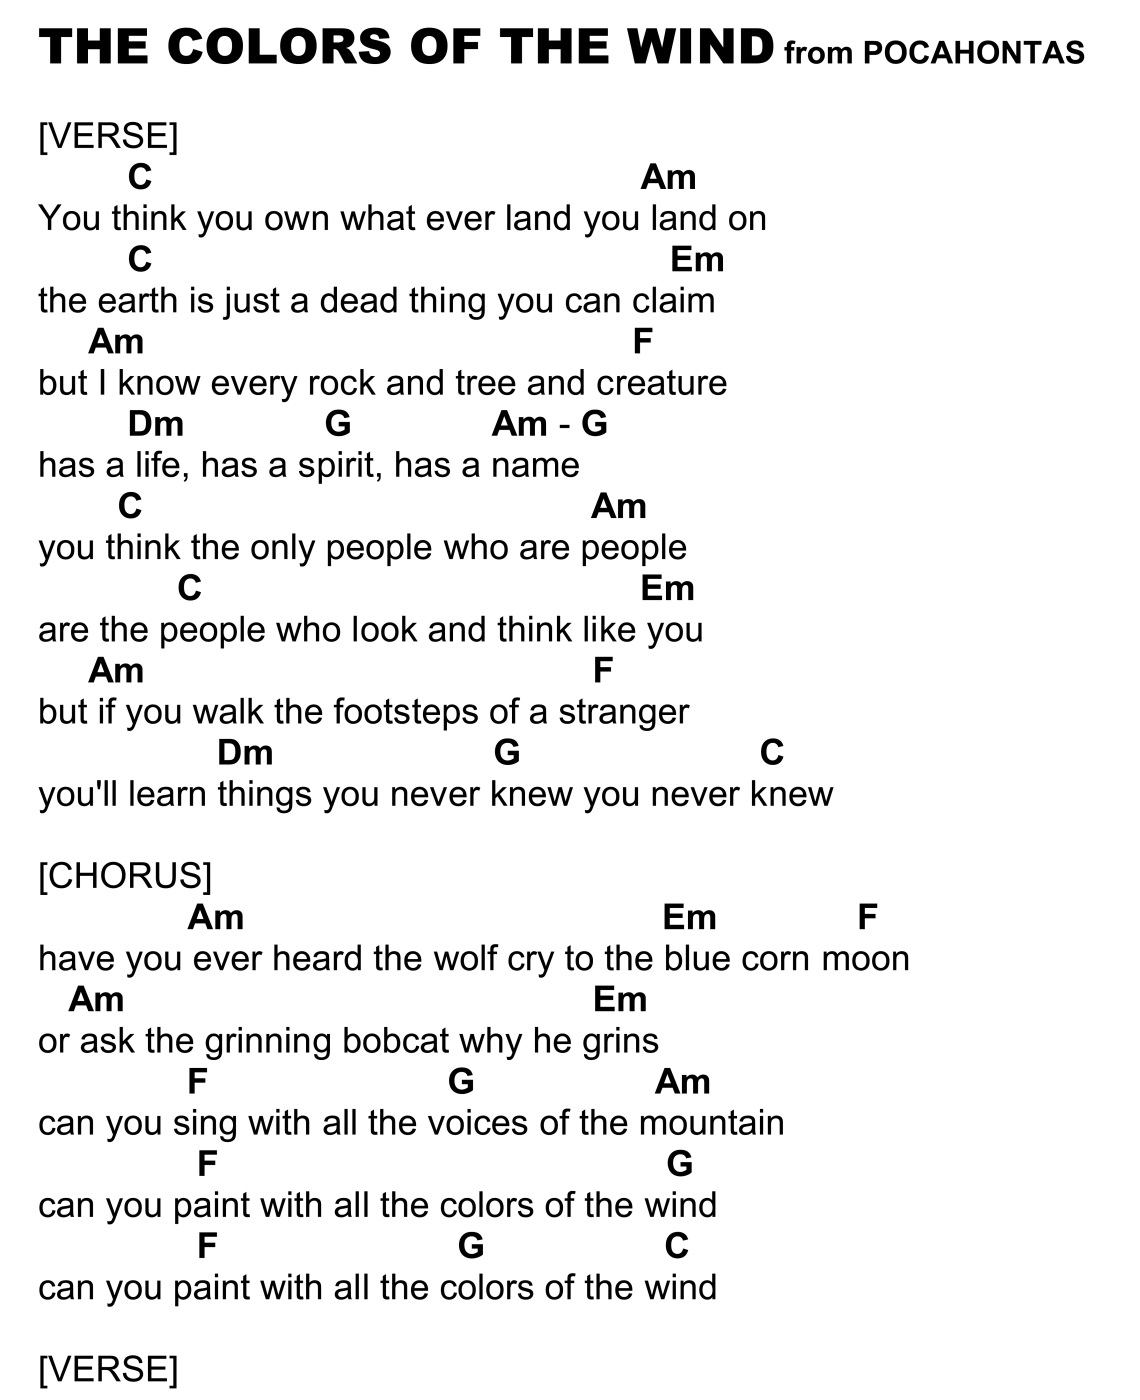 Guitar chords for silent night image collections guitar chords arman info image result for feliz navidad guitar chords and lyrics fatherlandz image collections hexwebz Image collections